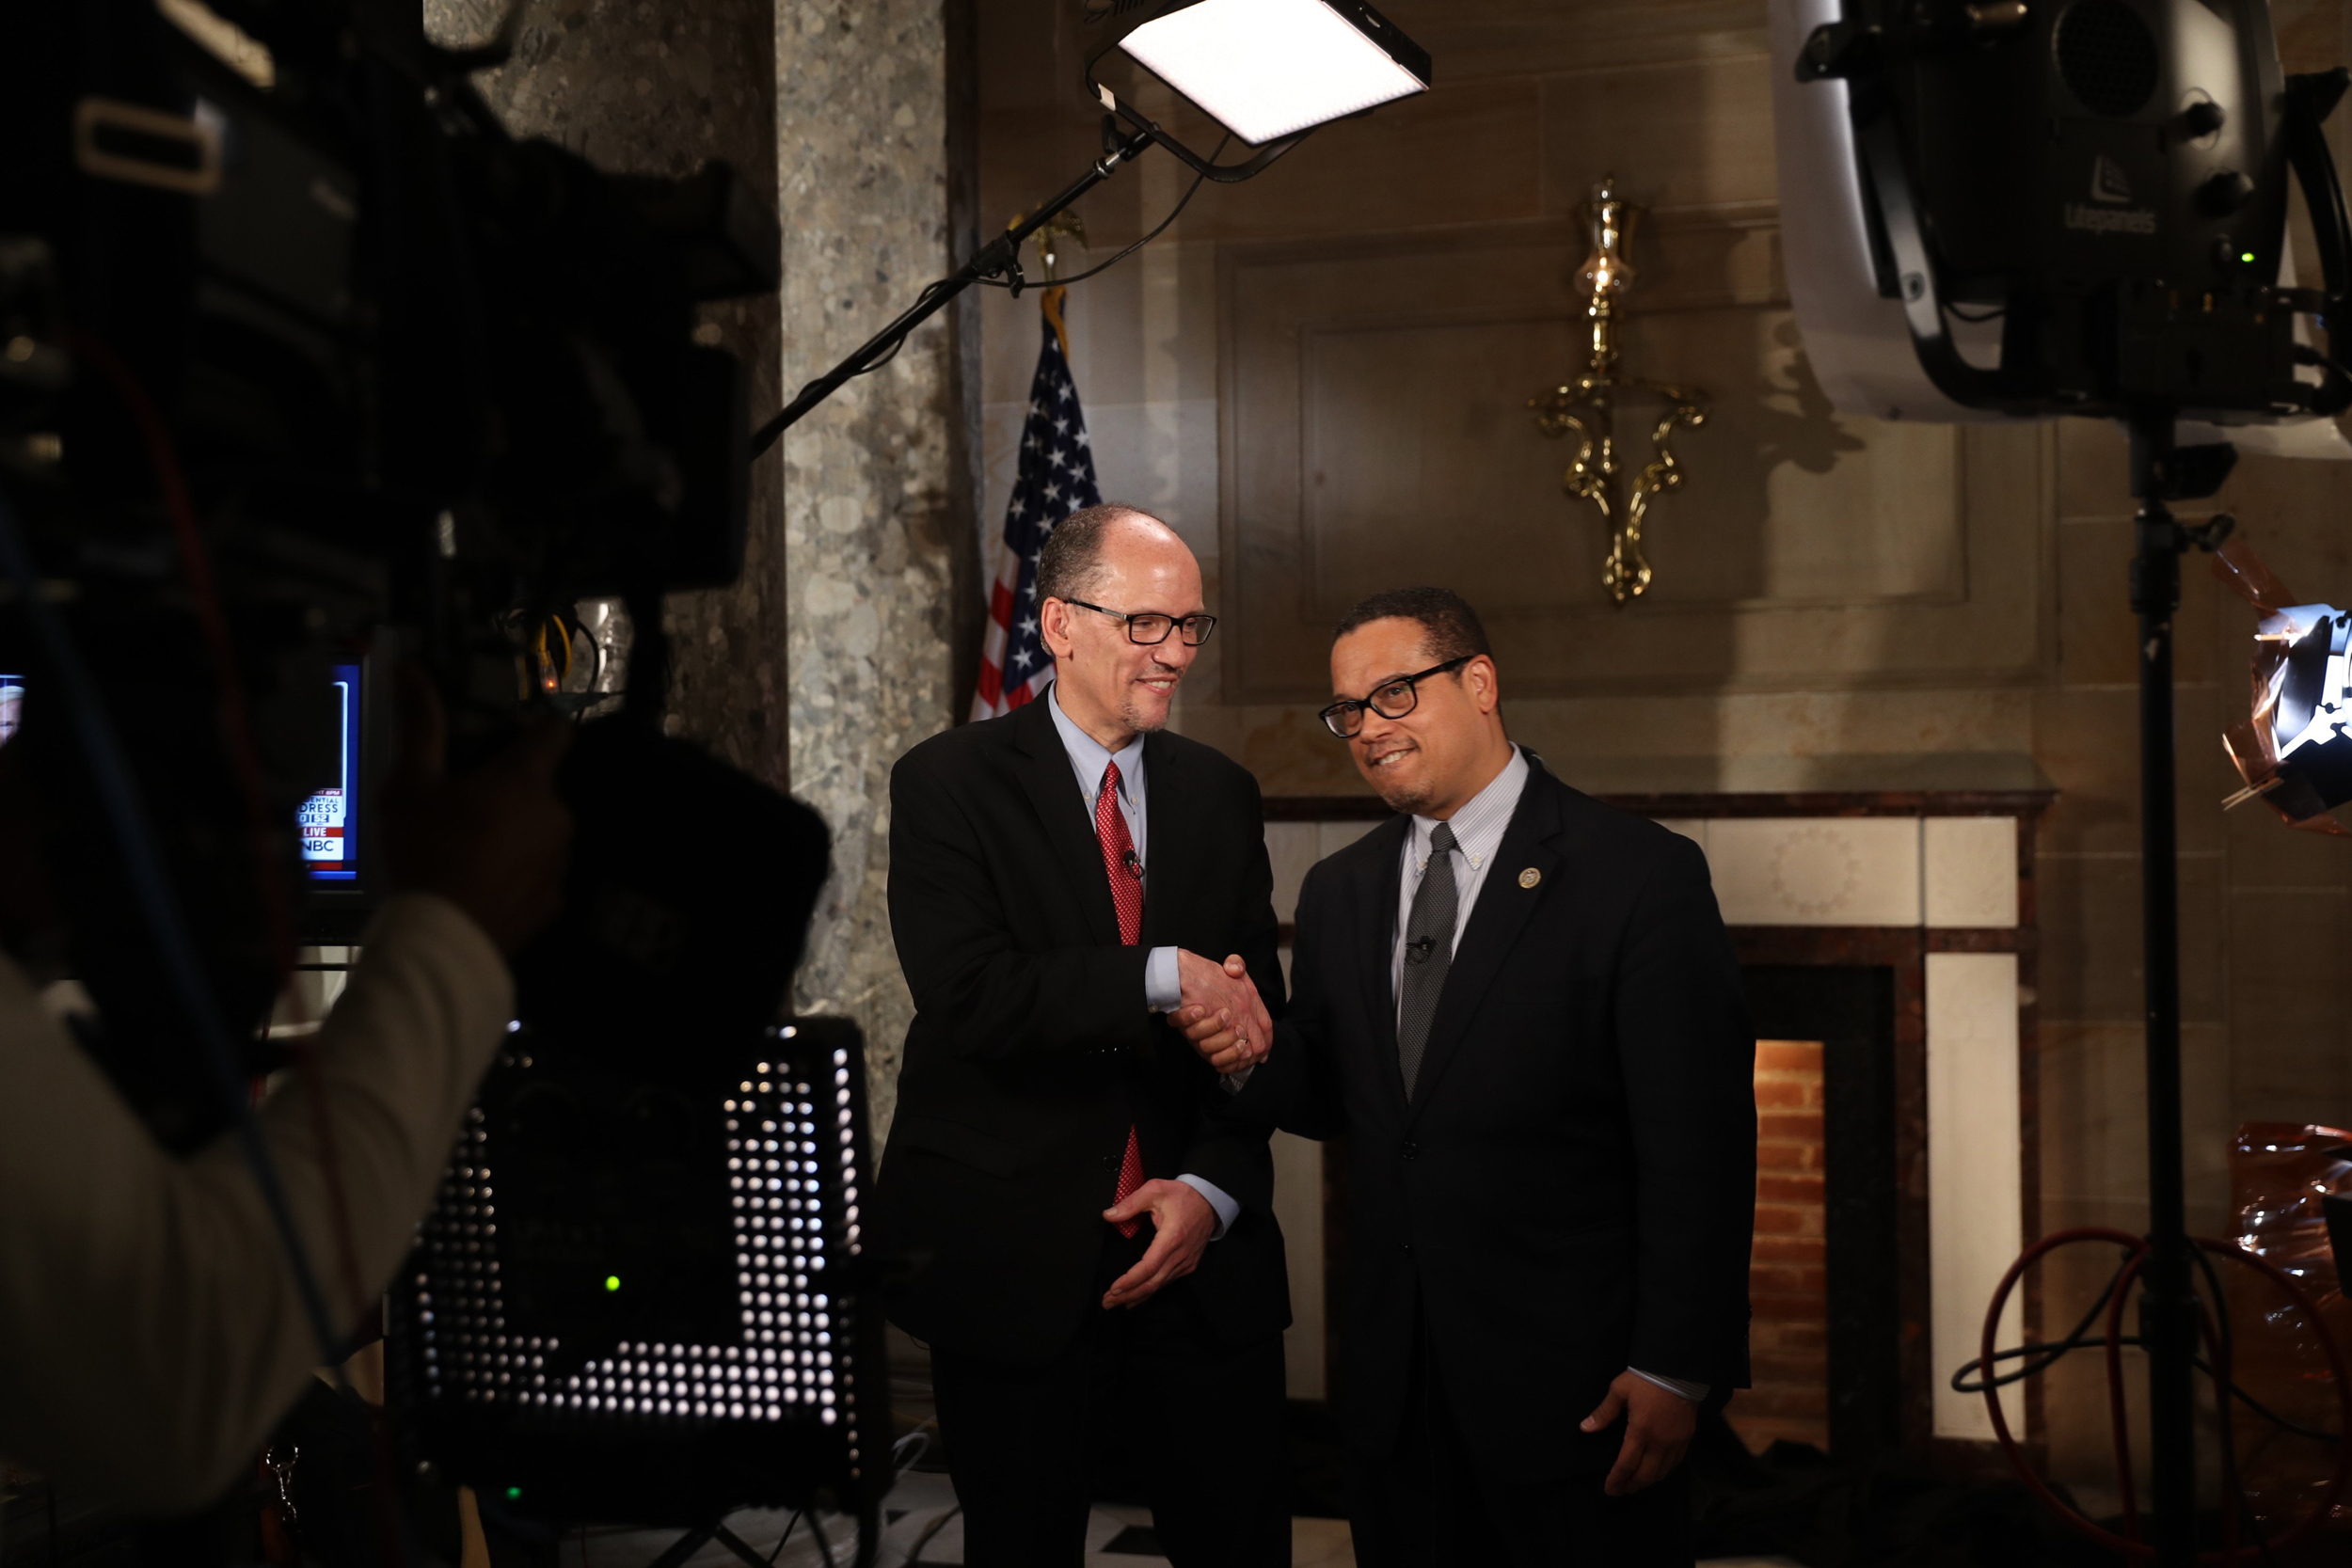 Image: Tom Perez and Rep. Keith Ellison